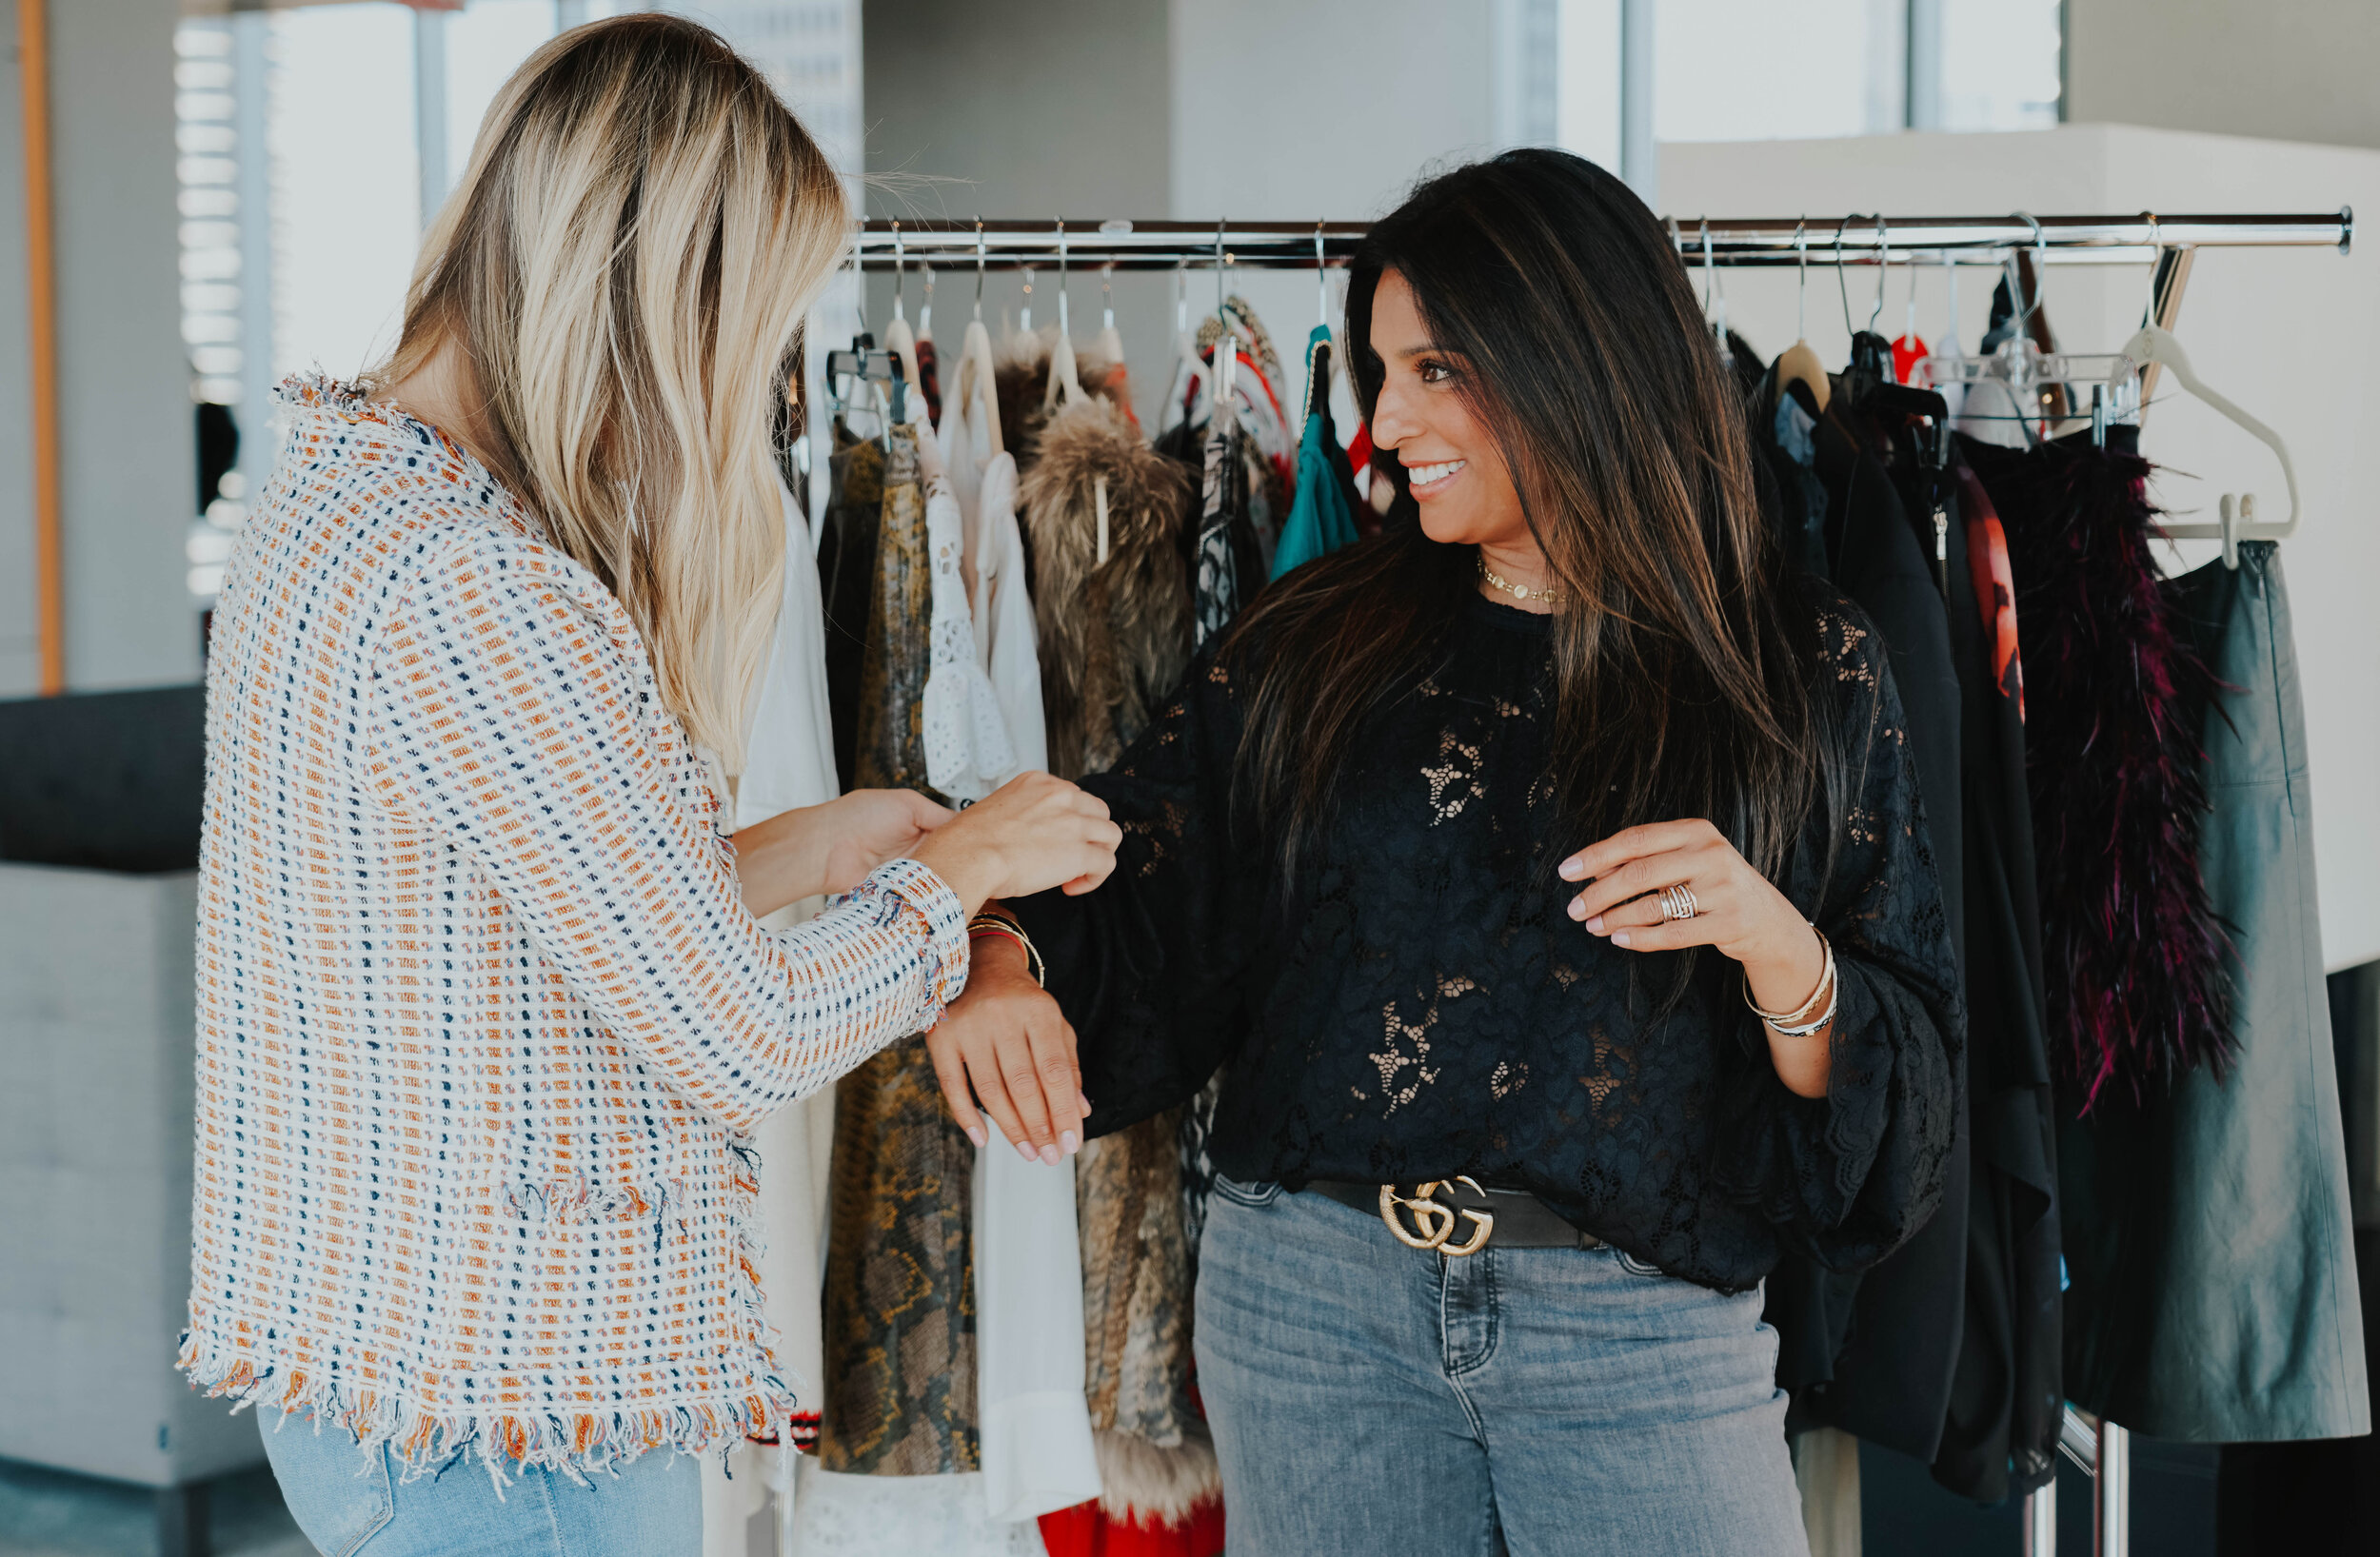 At Watson Style we empower our community of clients to pursue their best selves, and bask in their own unique beauty… - Are You Ready to Begin Your Journey?